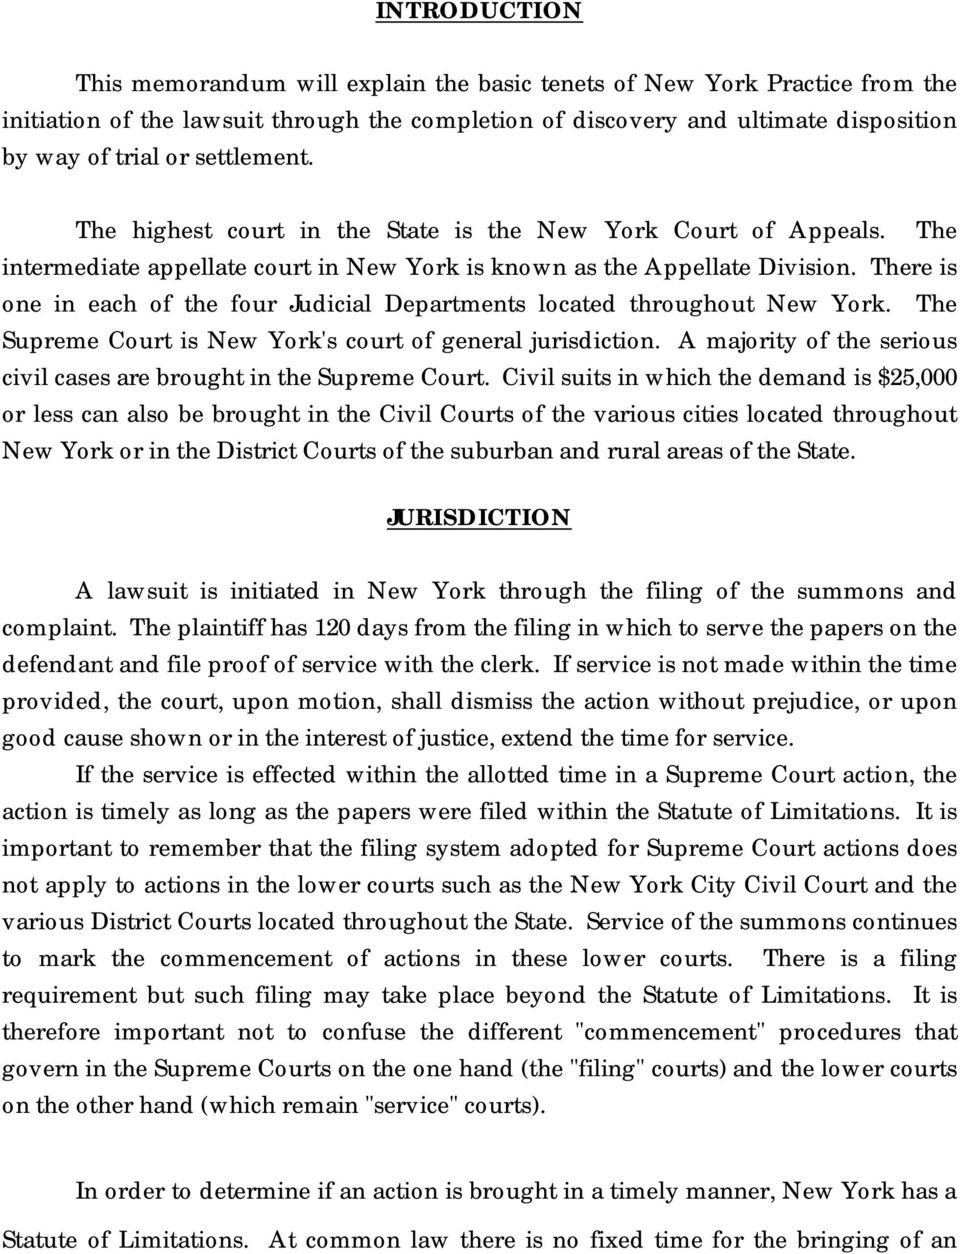 There is one in each of the four Judicial Departments located throughout New York. The Supreme Court is New York's court of general jurisdiction.